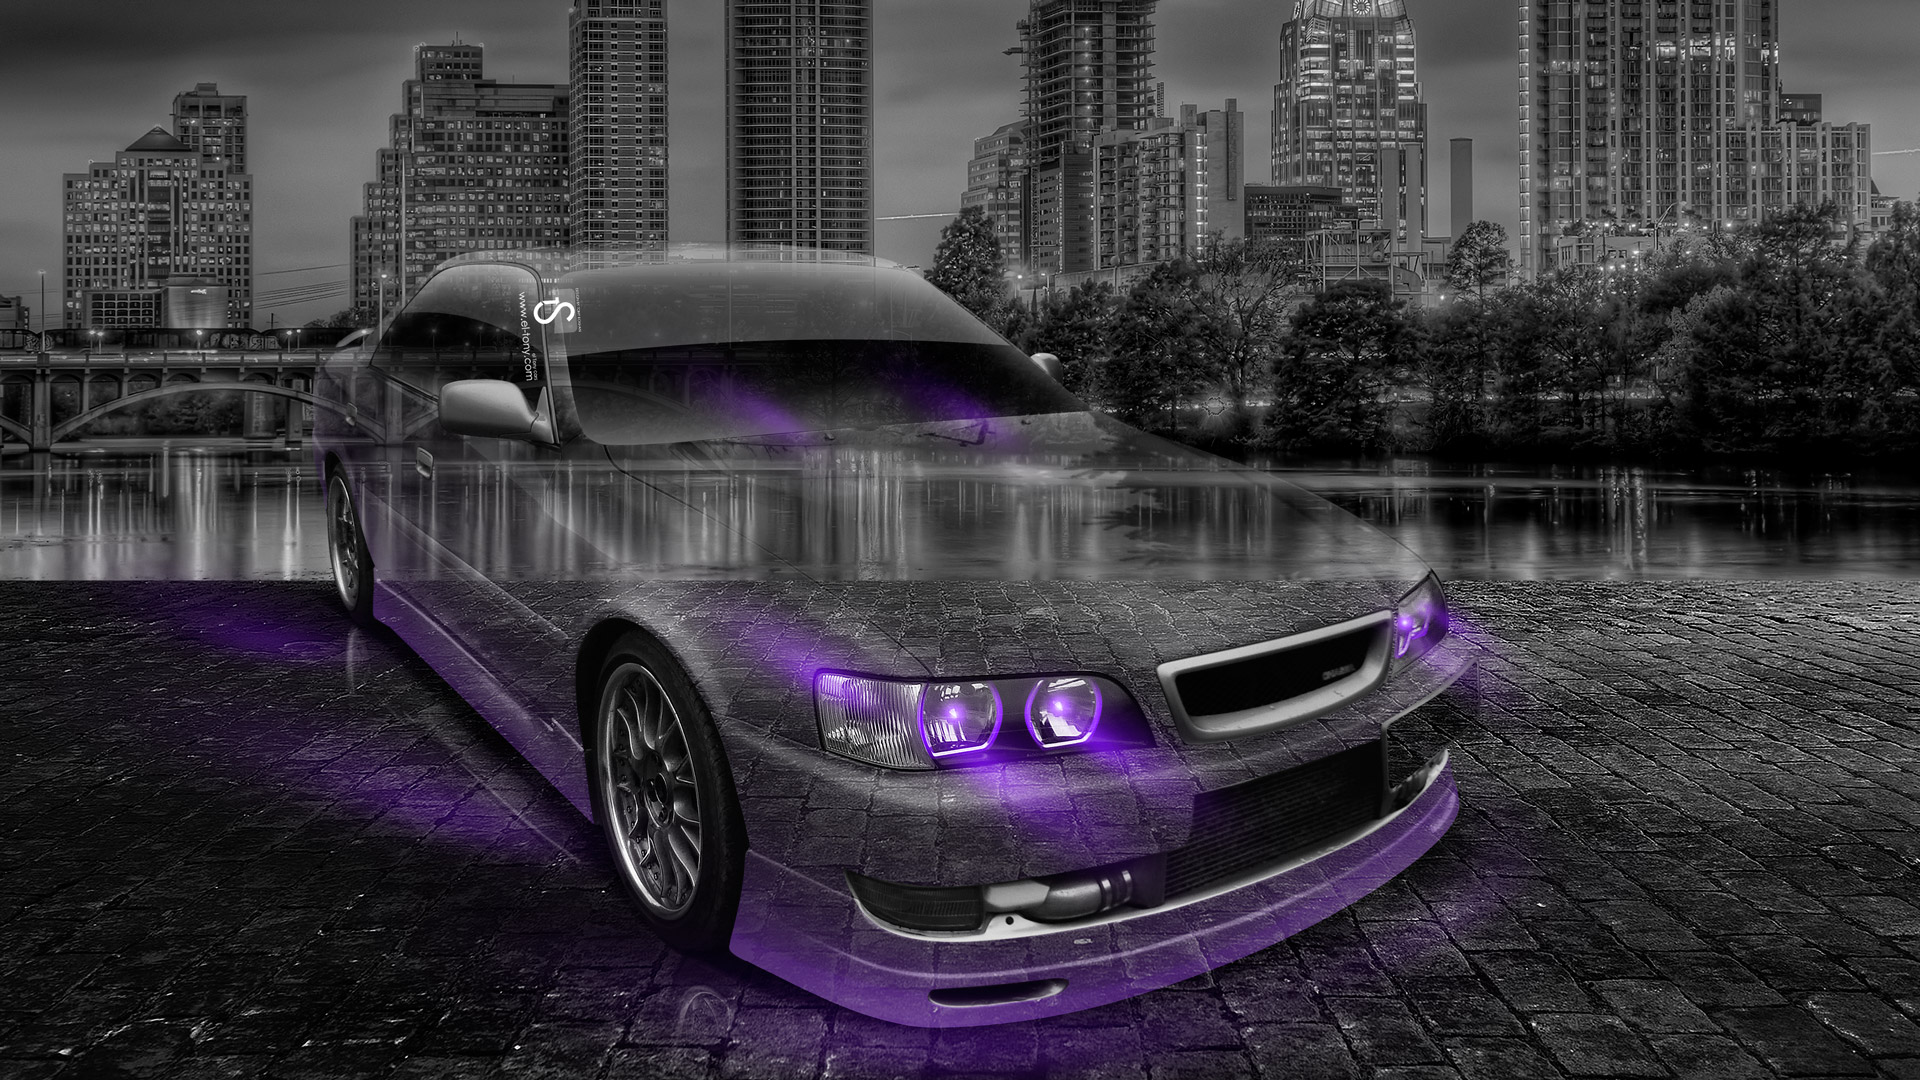 Amazing Beau Toyota Chaser JZX100 JDM Crystal City Car 2014 .